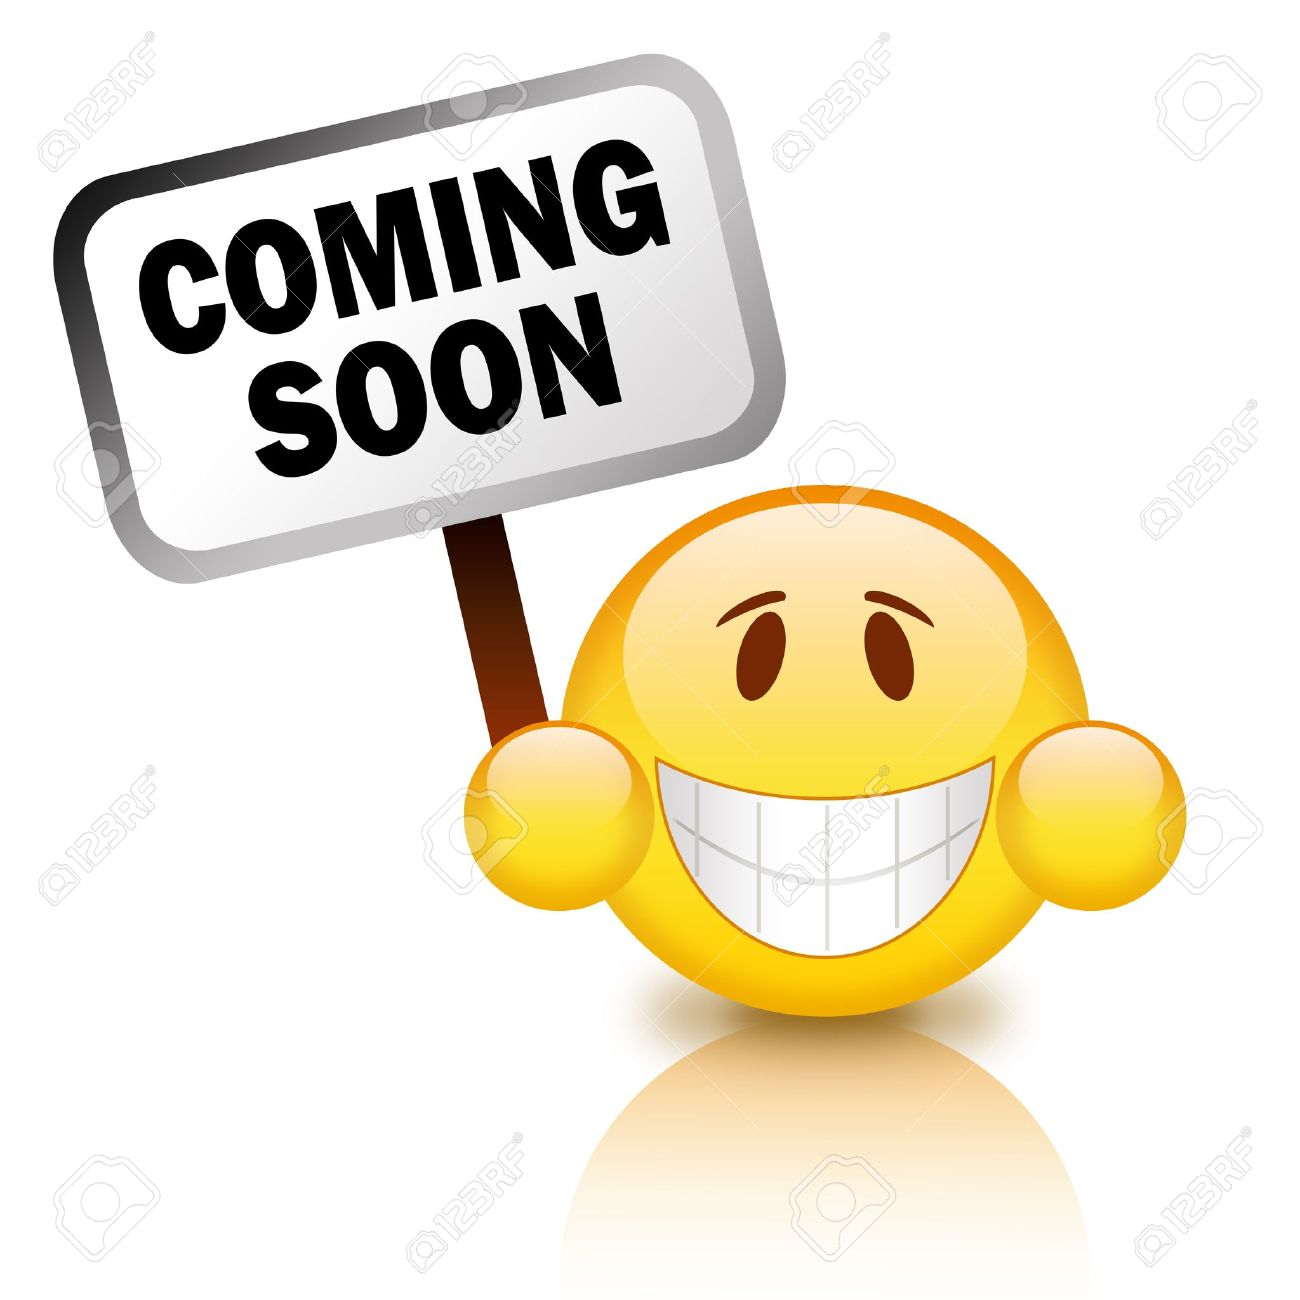 coming soon icon stock photo picture and royalty free image image